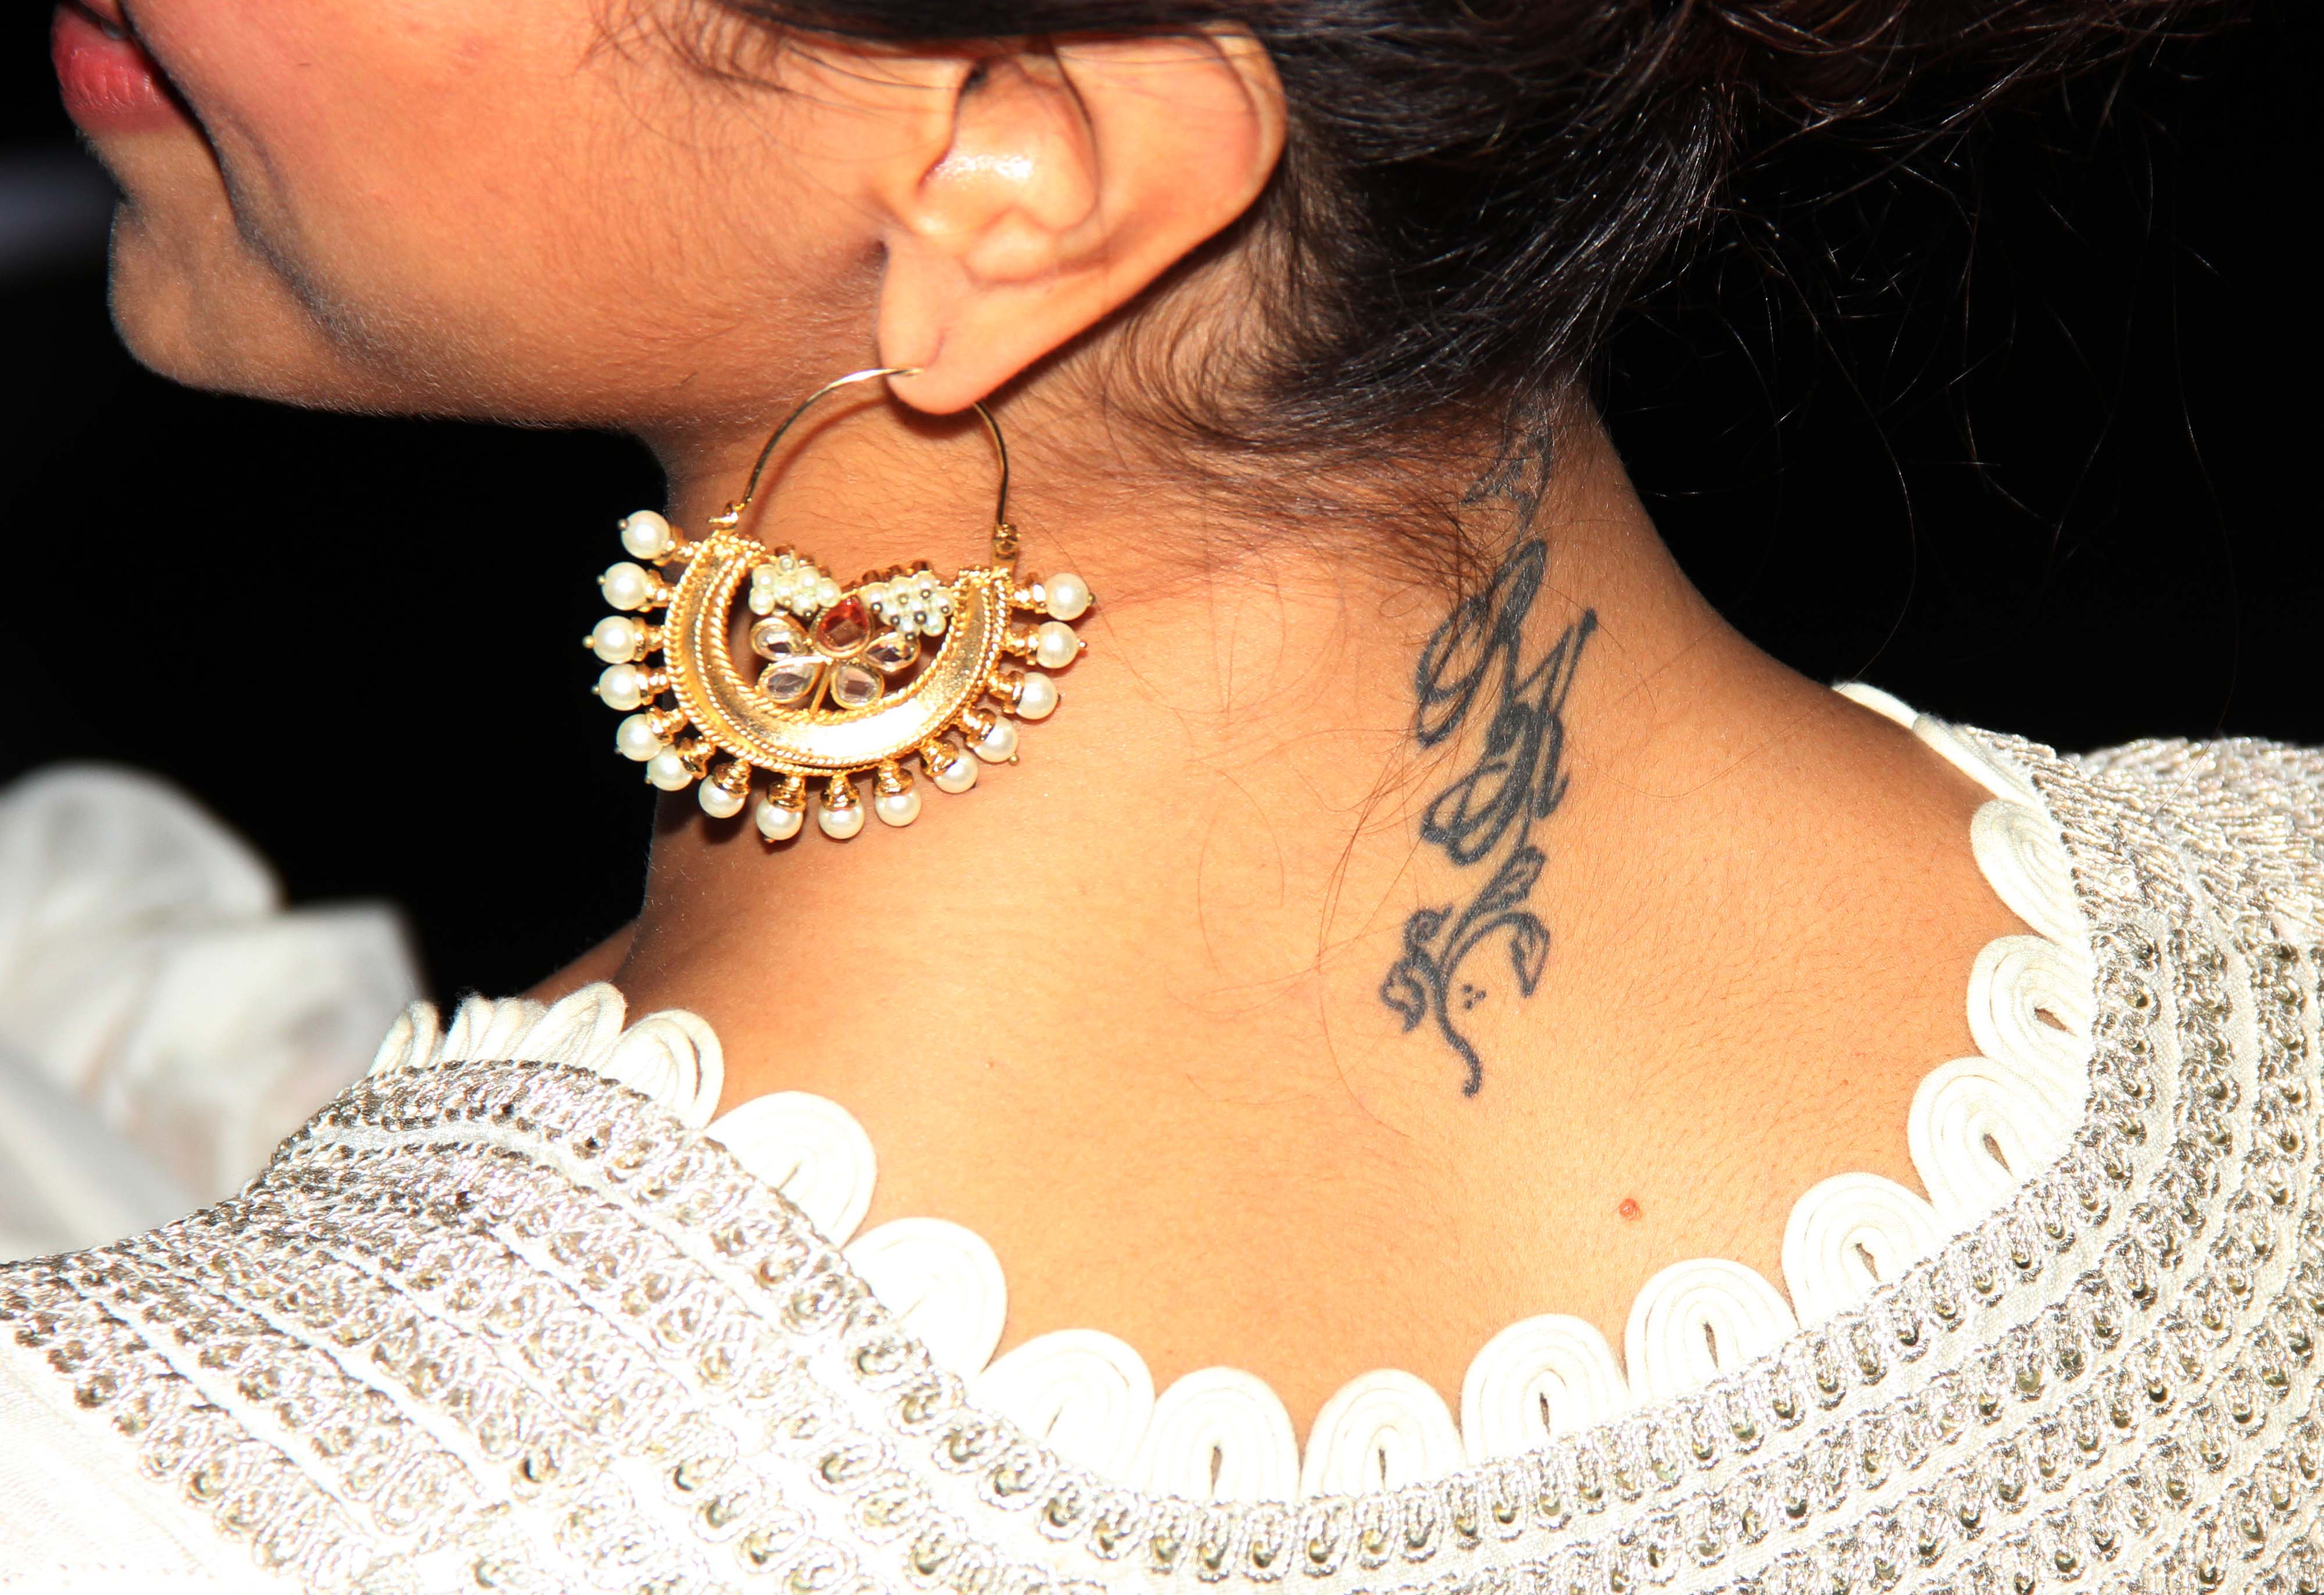 Deepika Padukone with a tattoo of RK.